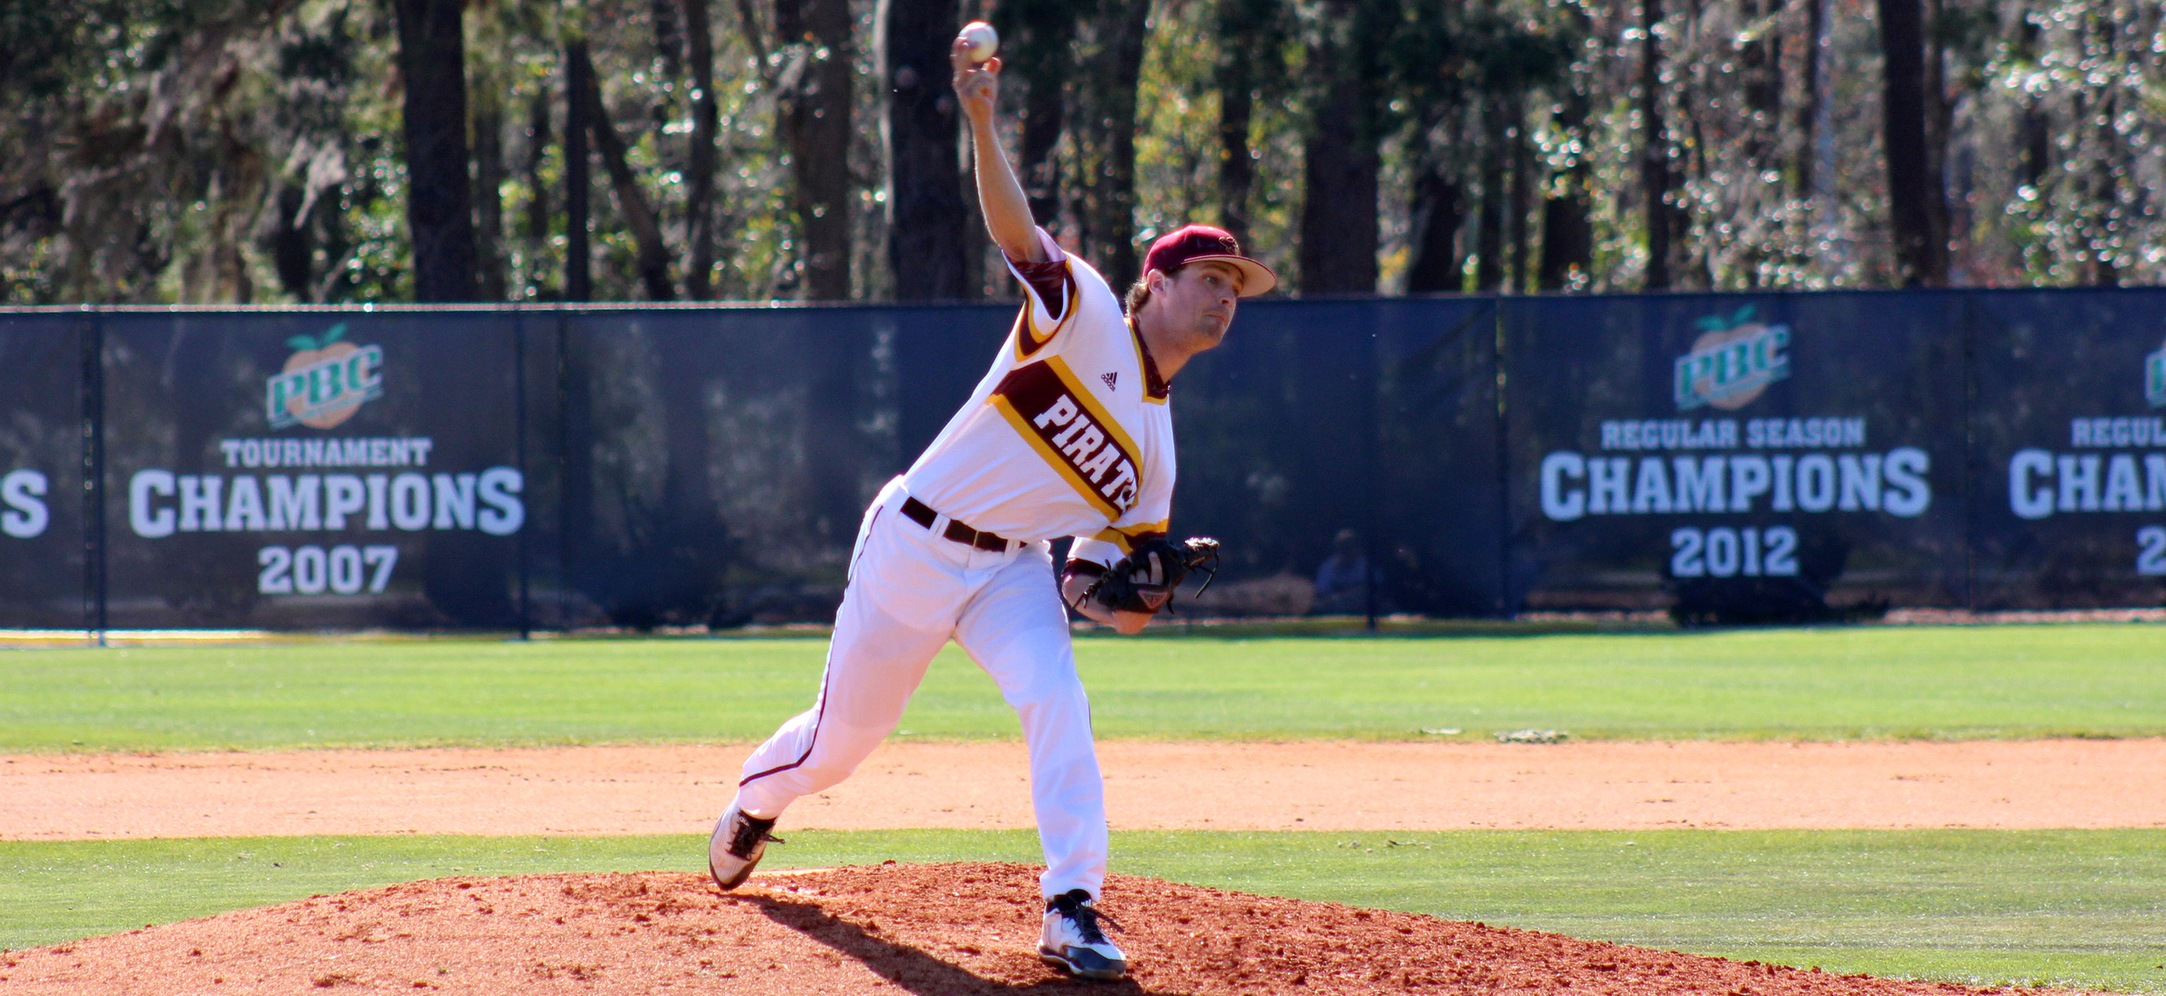 Mountain Lions Get Big Extra Inning To Defeat Pirate Baseball, 6-1, In 11